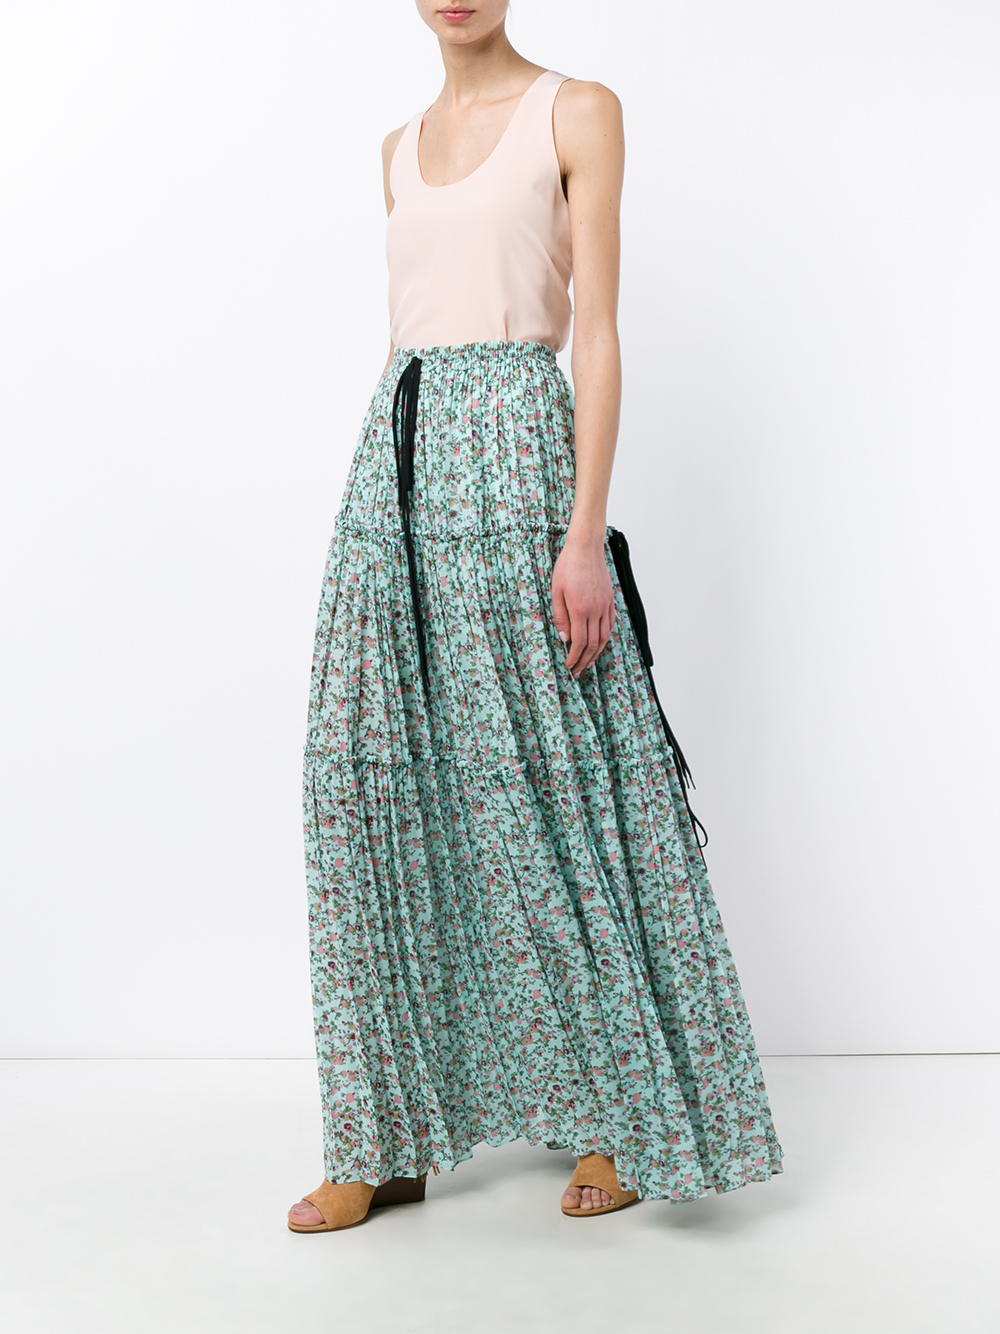 Our women's maxi dress comes in a lovely shade of aqua blue, and has a paisley skirt that is reminiscent of the s. The skirt has a matching blue that is accented with black and purple.